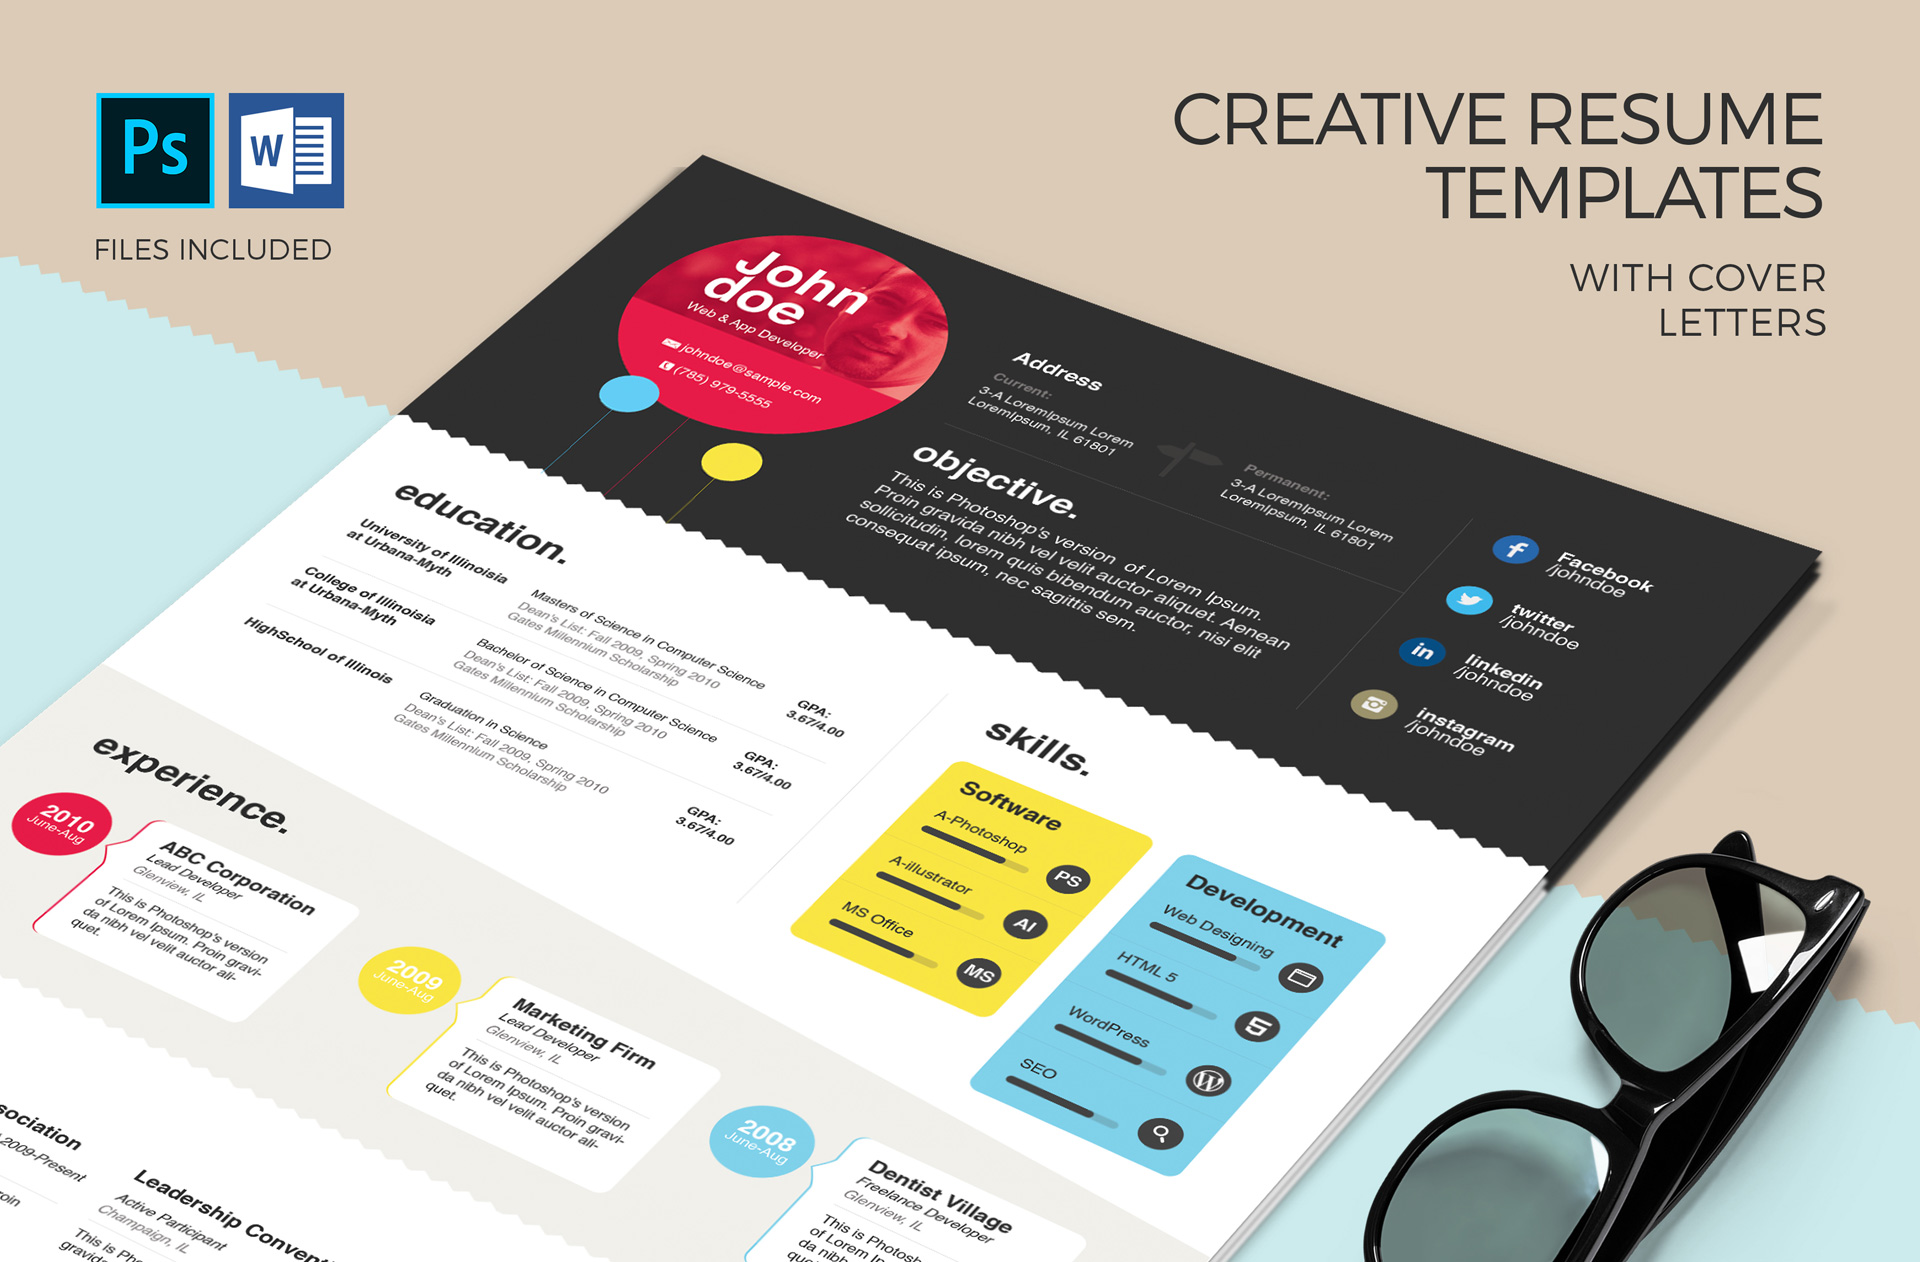 Creative Resume Templates With Cover Letters MS Word PSD